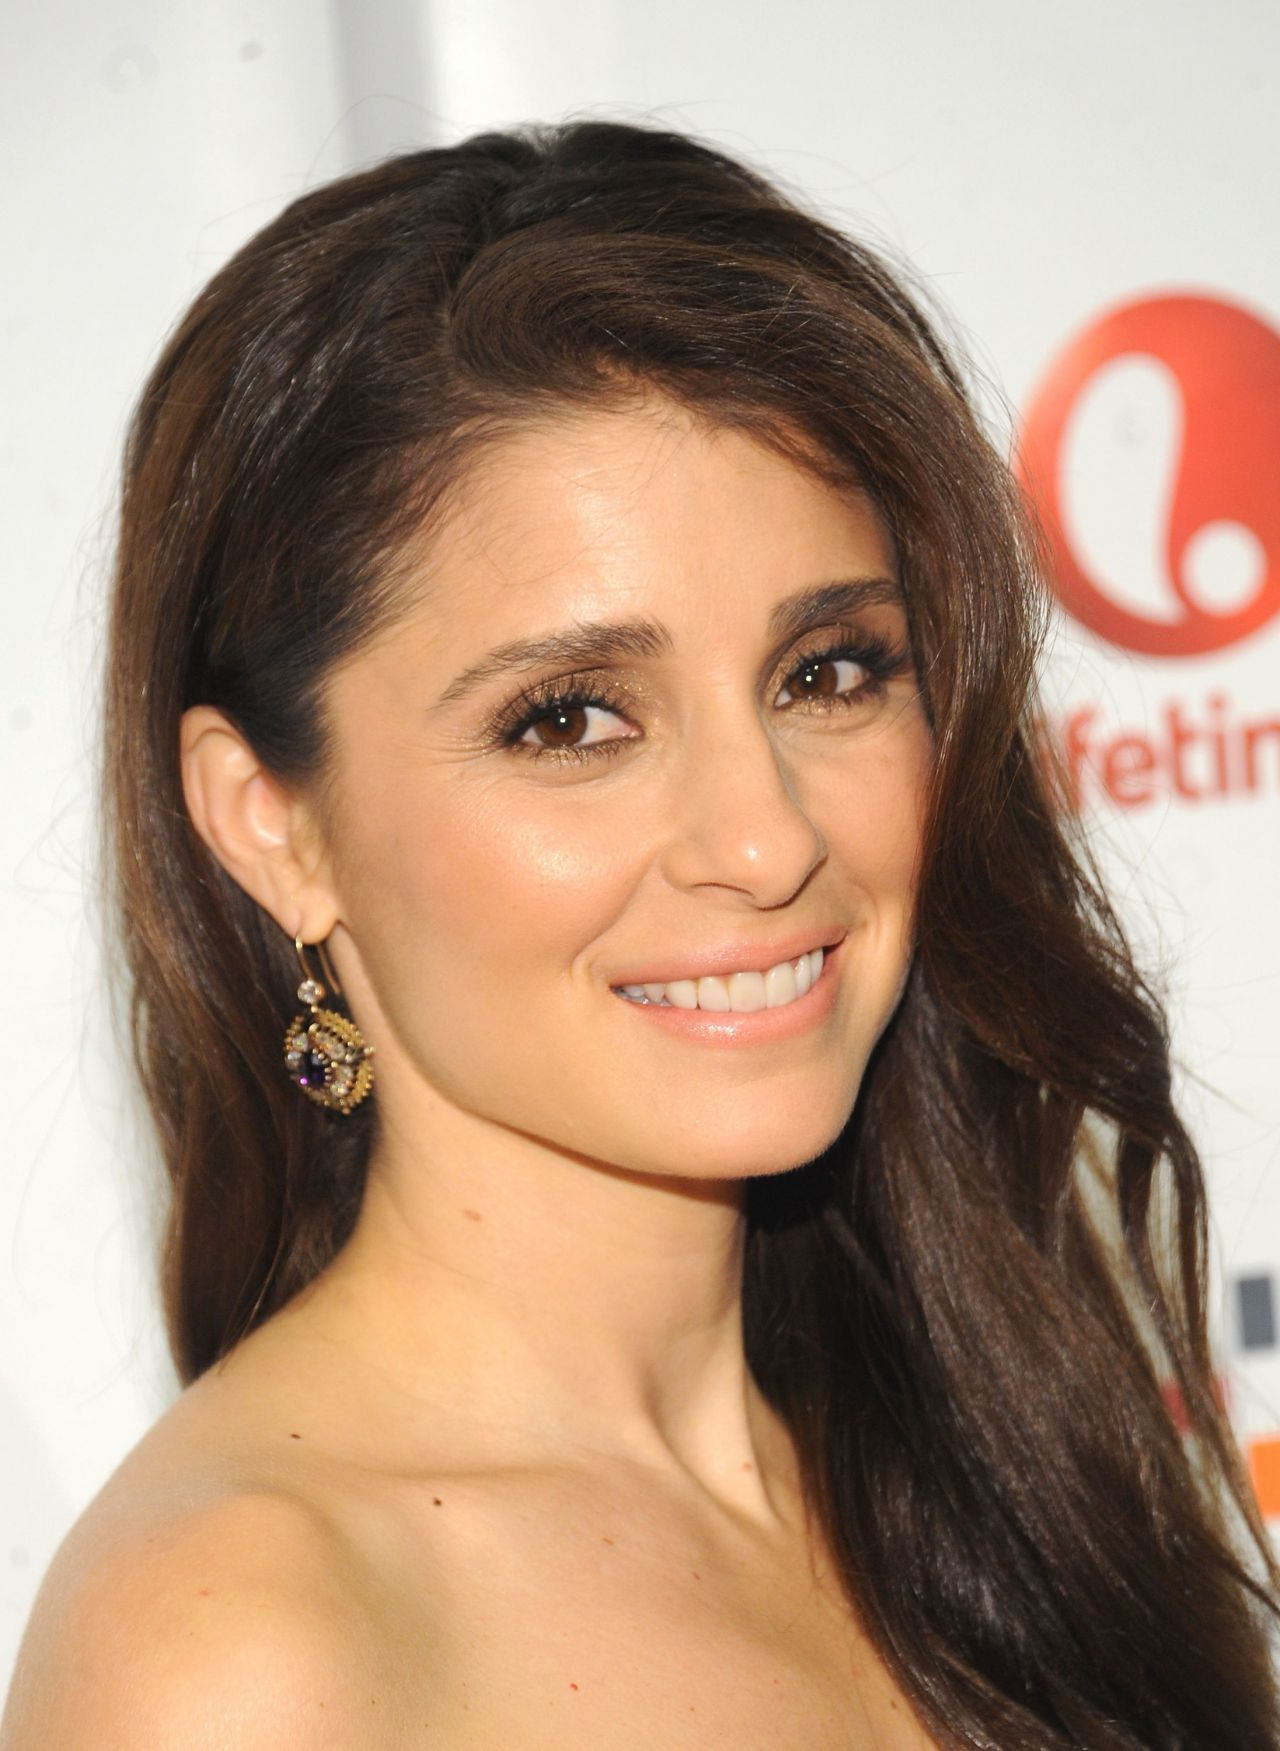 Shiri Appleby nude (12 pictures) Hot, Snapchat, legs